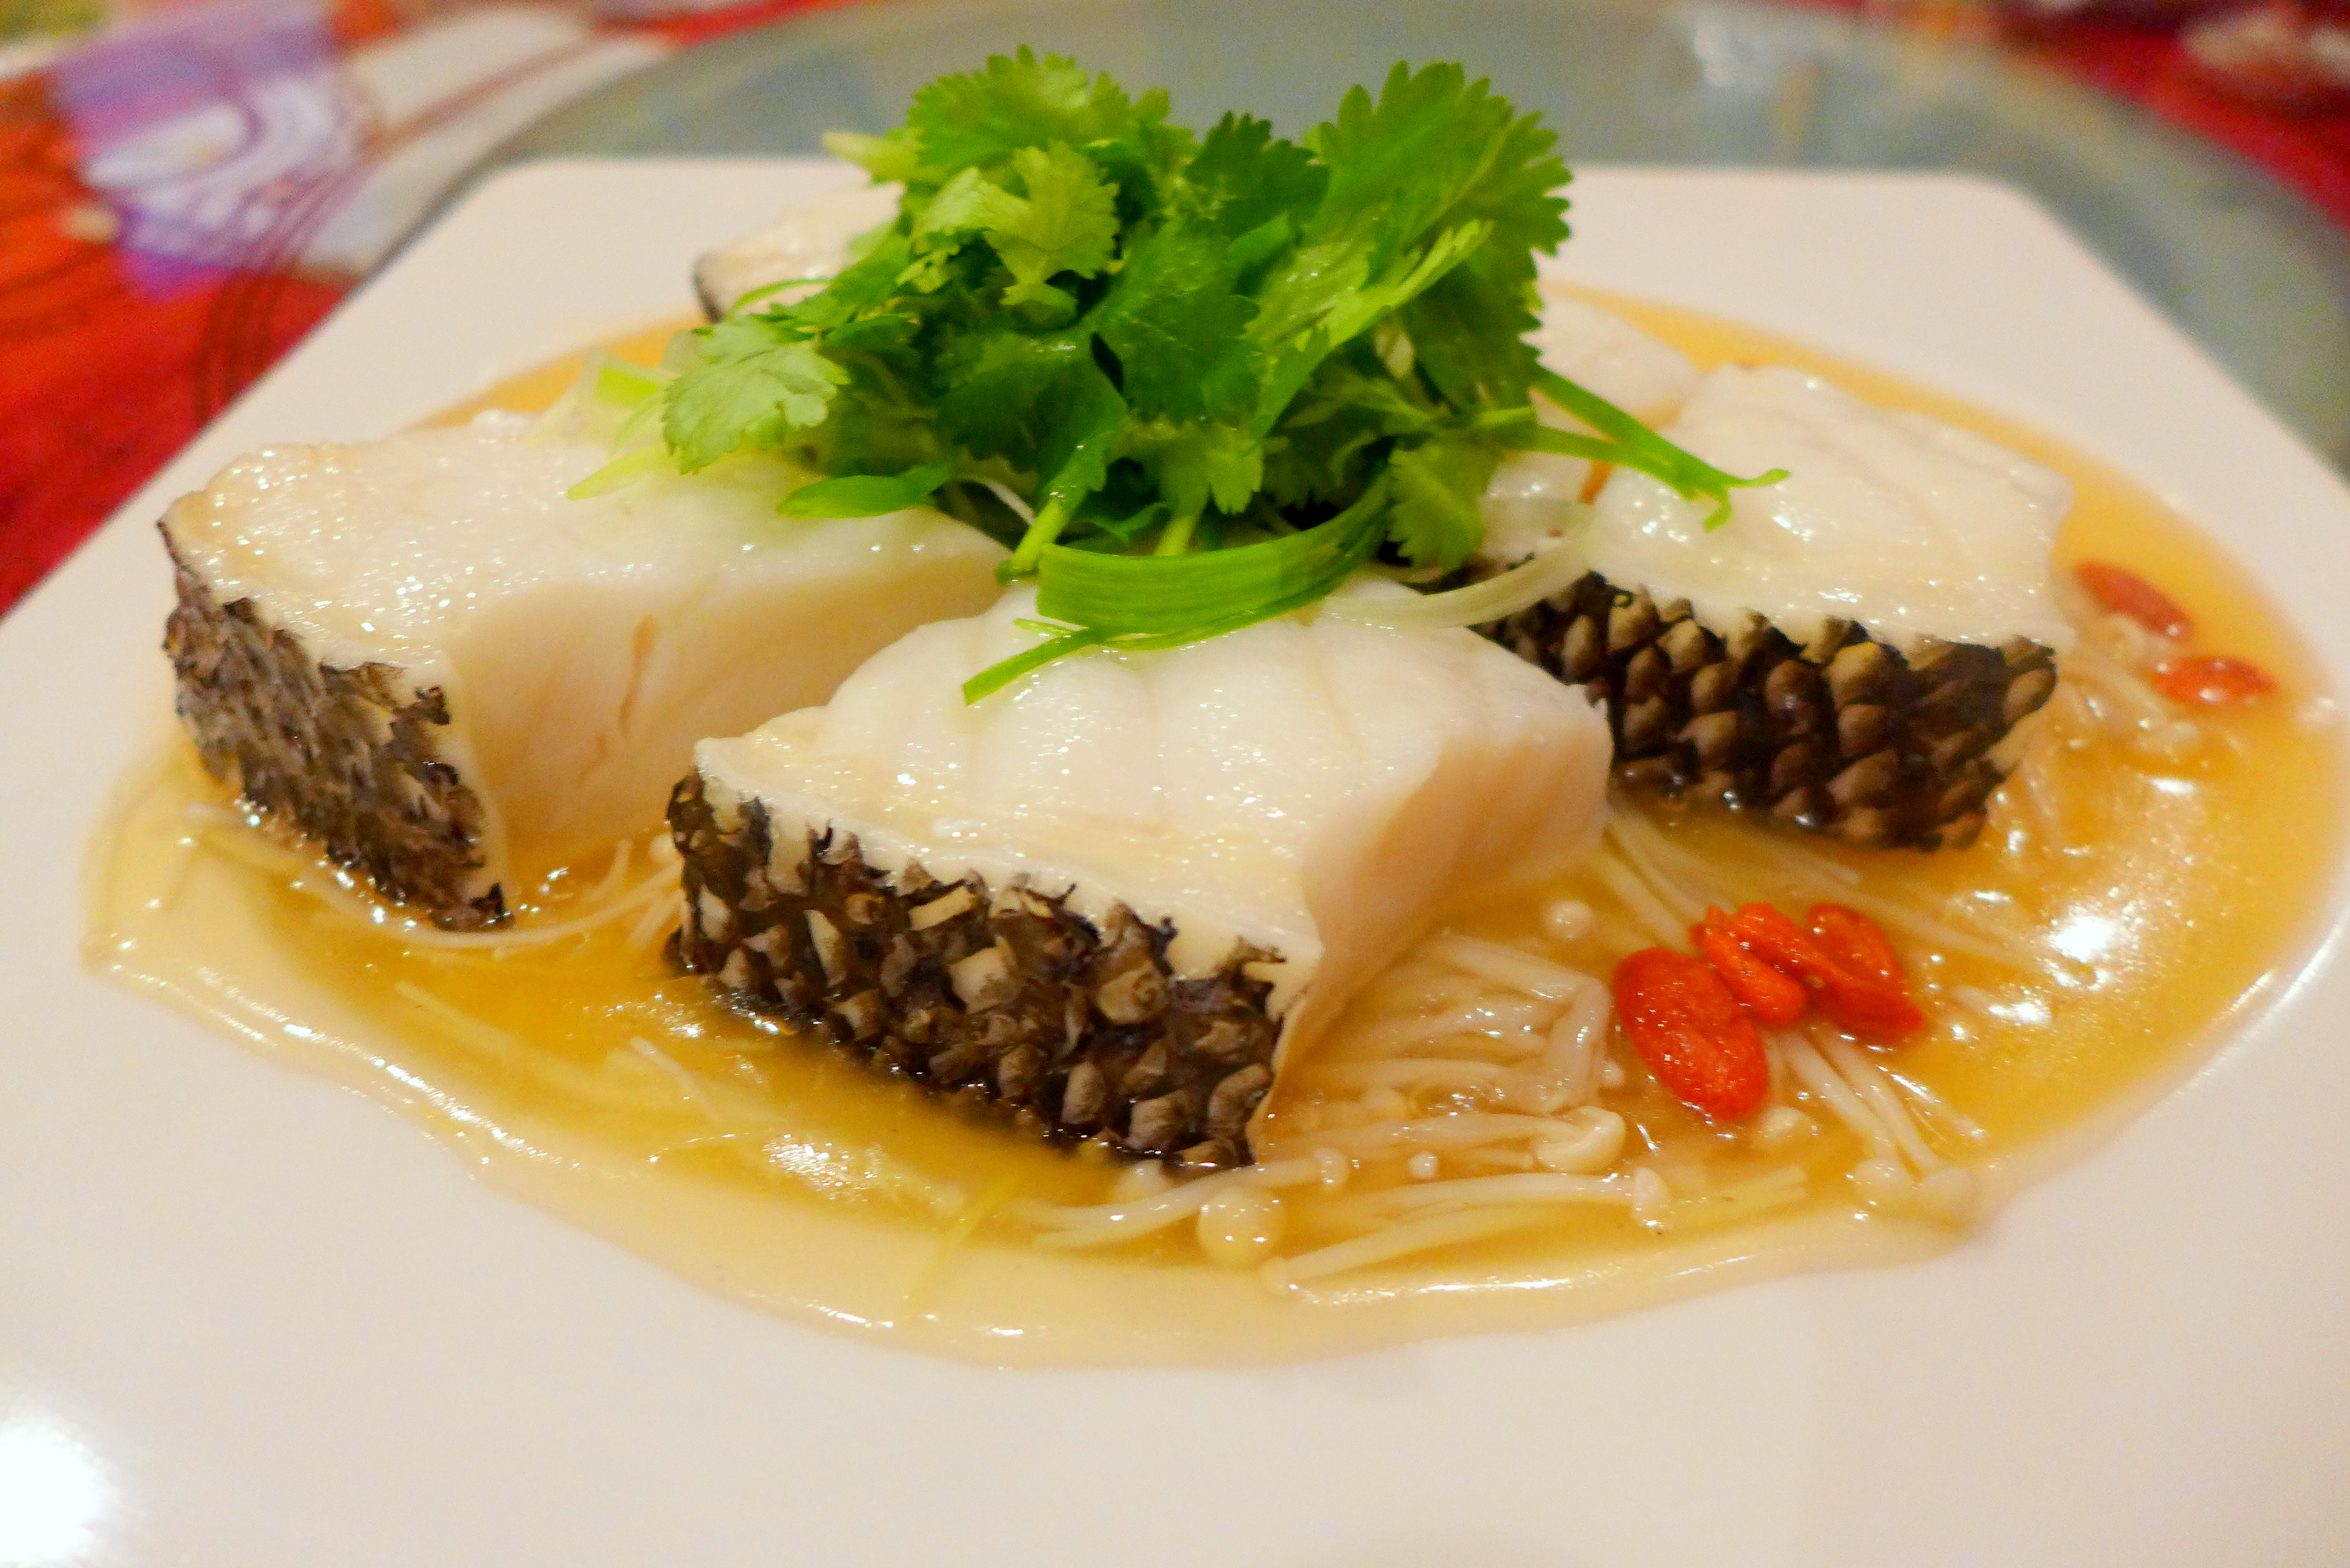 Reunite and celebrate chinese new year at celestial court for Cod fish in chinese